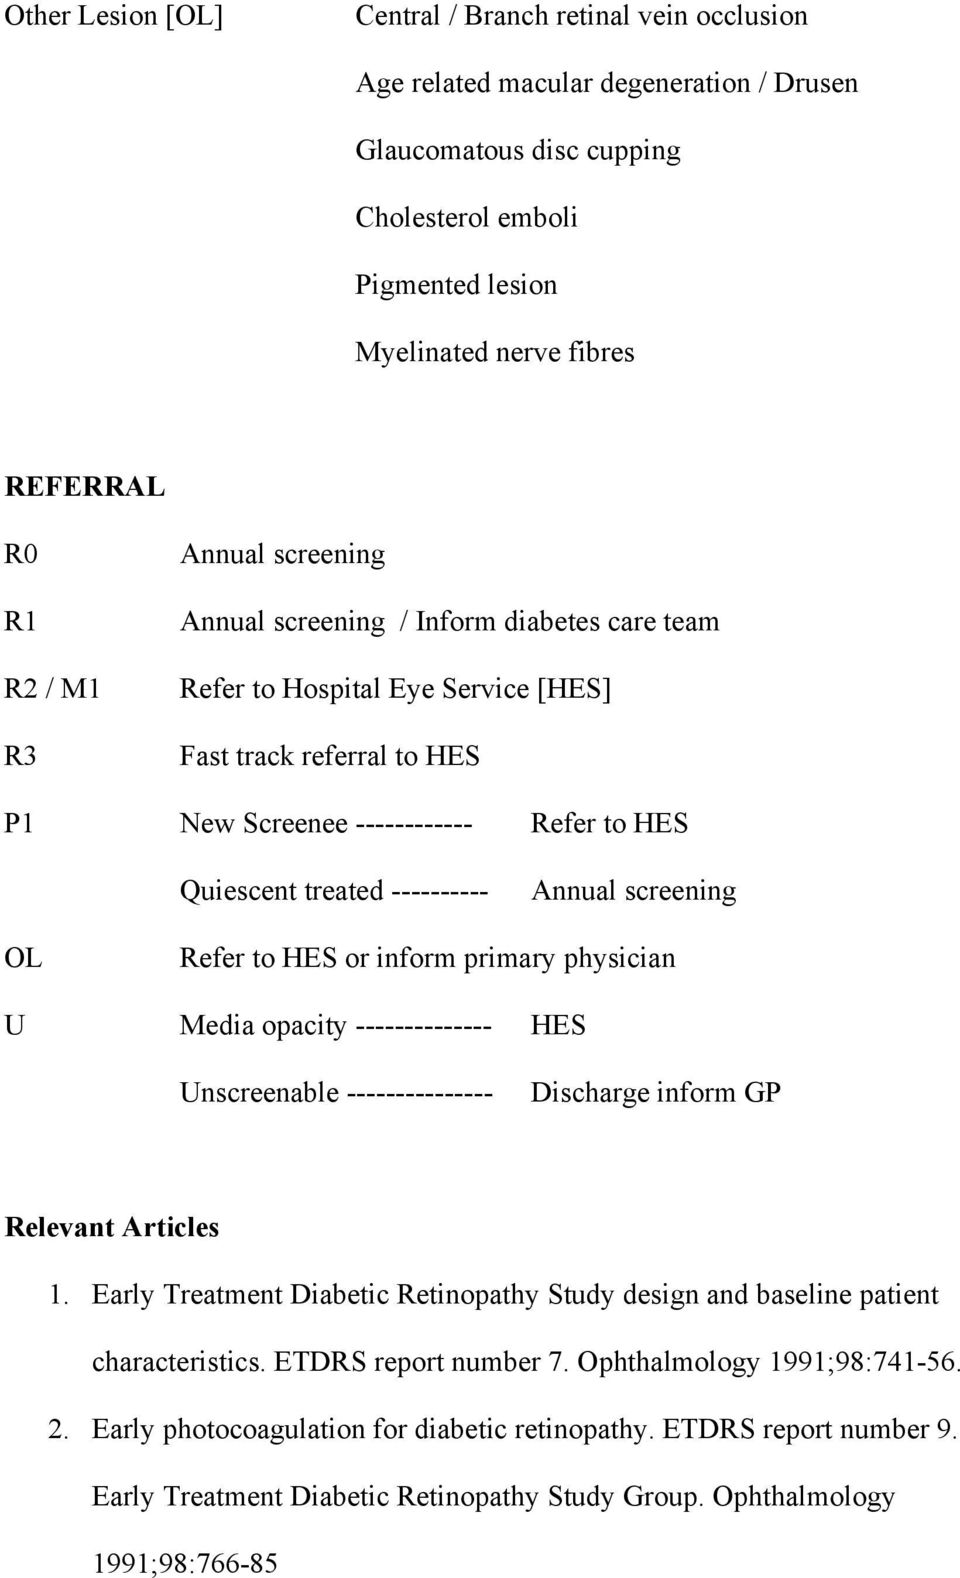 ---------- Annual screening OL Refer to HES or inform primary physician U Media opacity -------------- HES Unscreenable --------------- Discharge inform GP Relevant Articles 1.